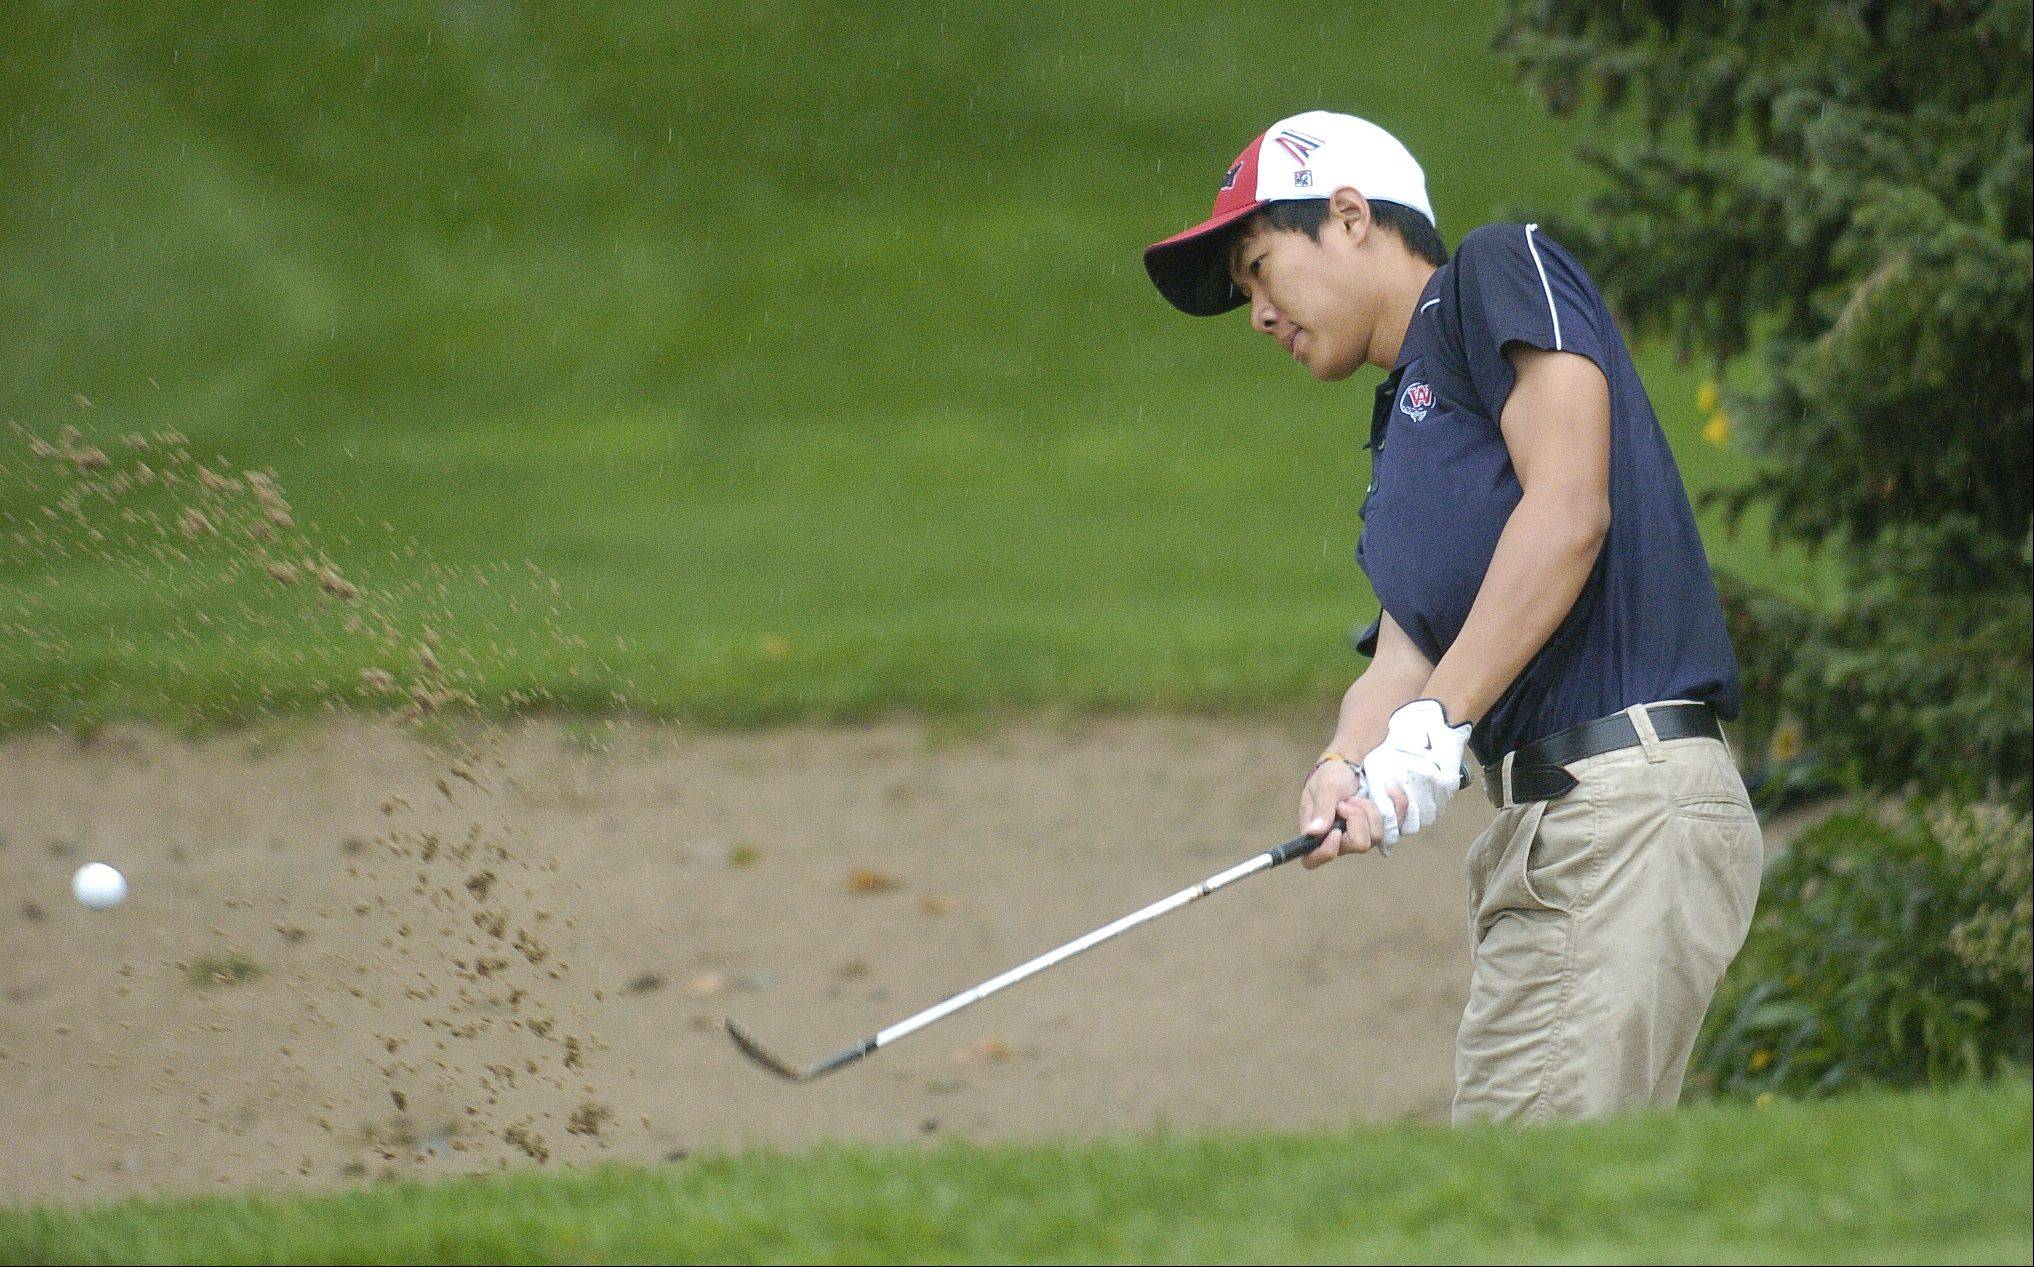 West Aurora's Piya Teerakanog blasts out of the sand on the 16th hole. Rain briefly halted play in Bartlett Thursday at a DuPage Valley Conference boys golf tournament at Bartlett Hills Golf course.